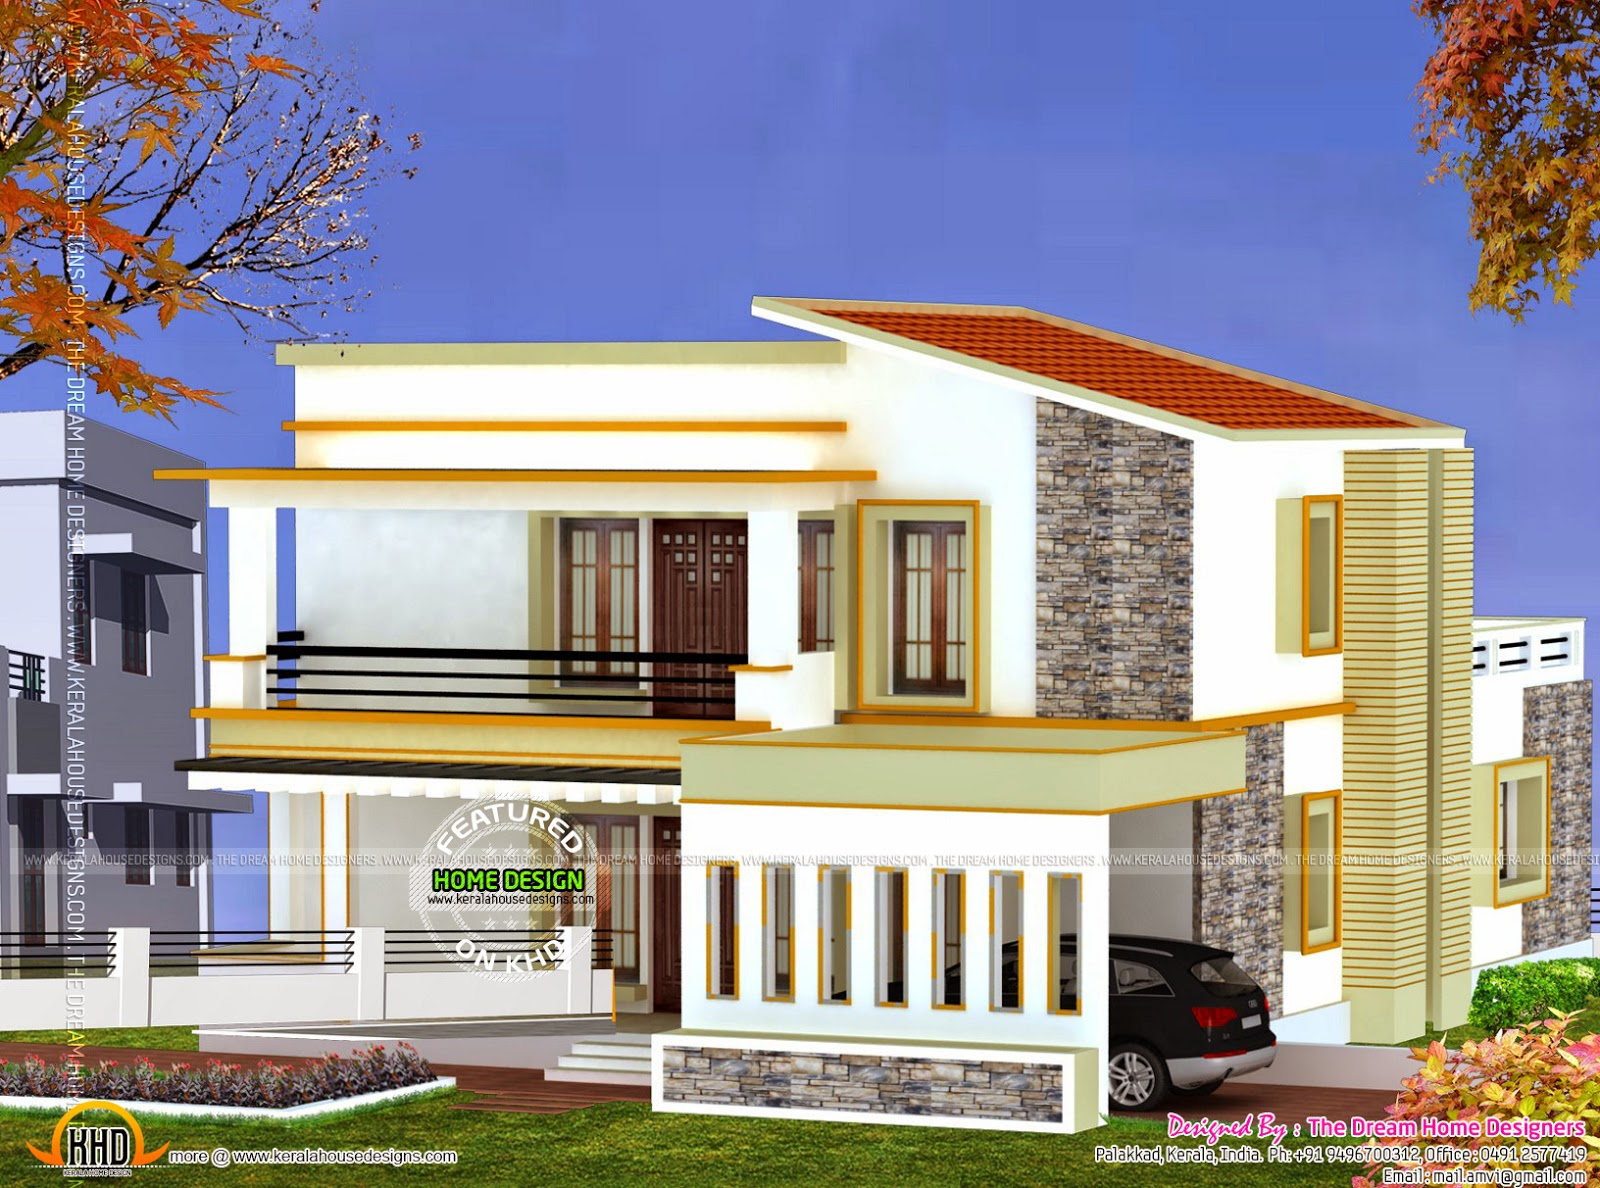 superb 1600 sq ft house plans 4 3d view jpg anelti com superb 1600 sq ft house plans 4 3d view jpg